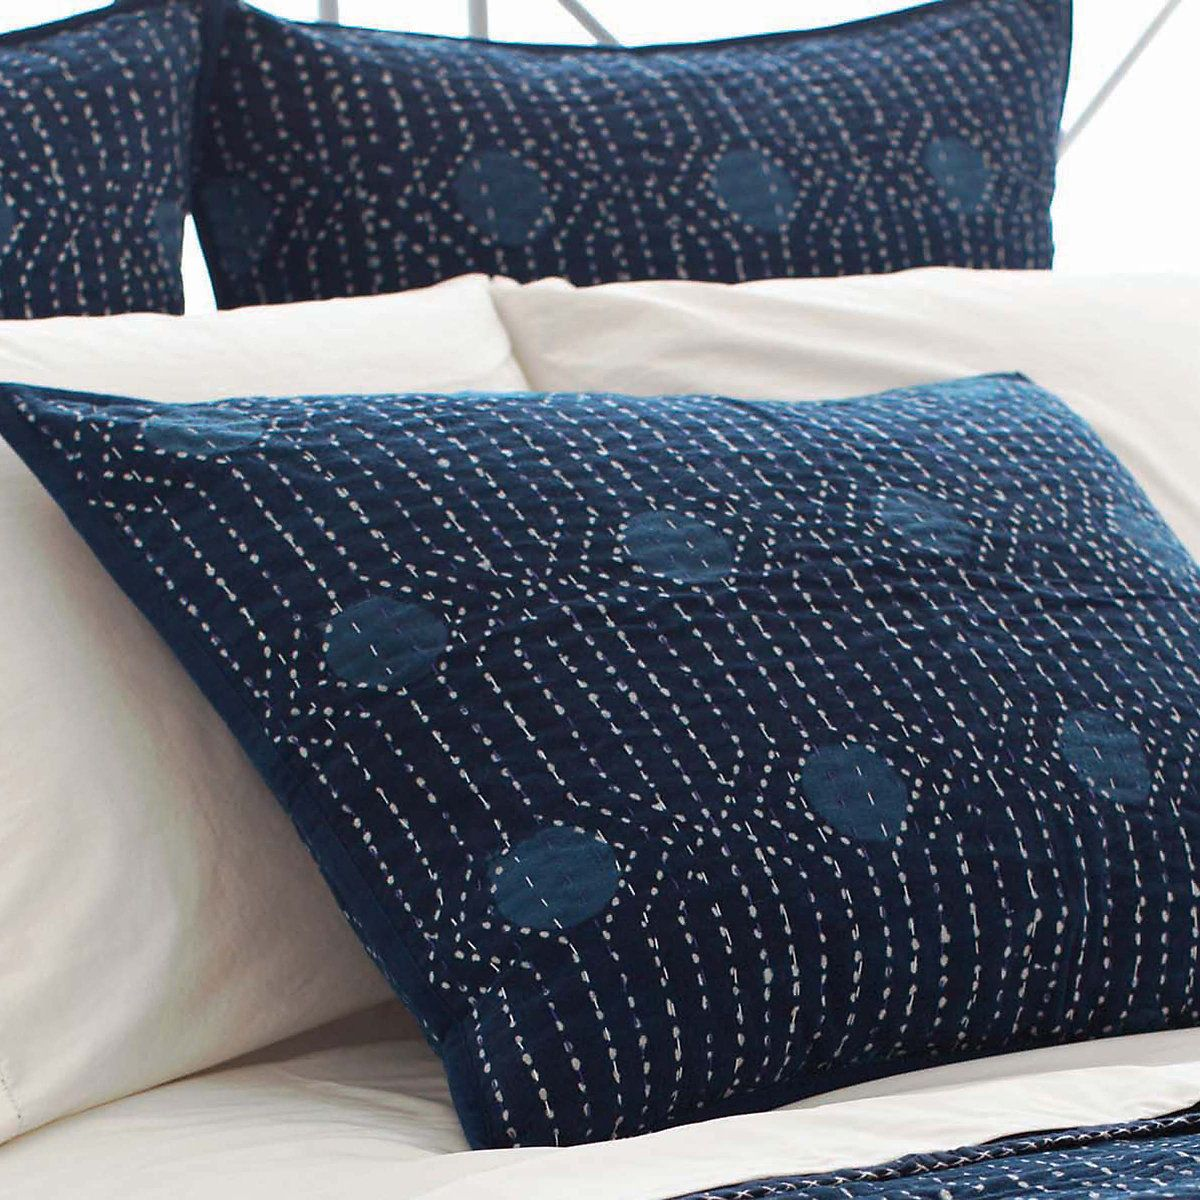 Inspired by traditional Indian kantha quilts, this cotton pillow features a block-style print on an ink-colored background and a contrast running stitch on top.